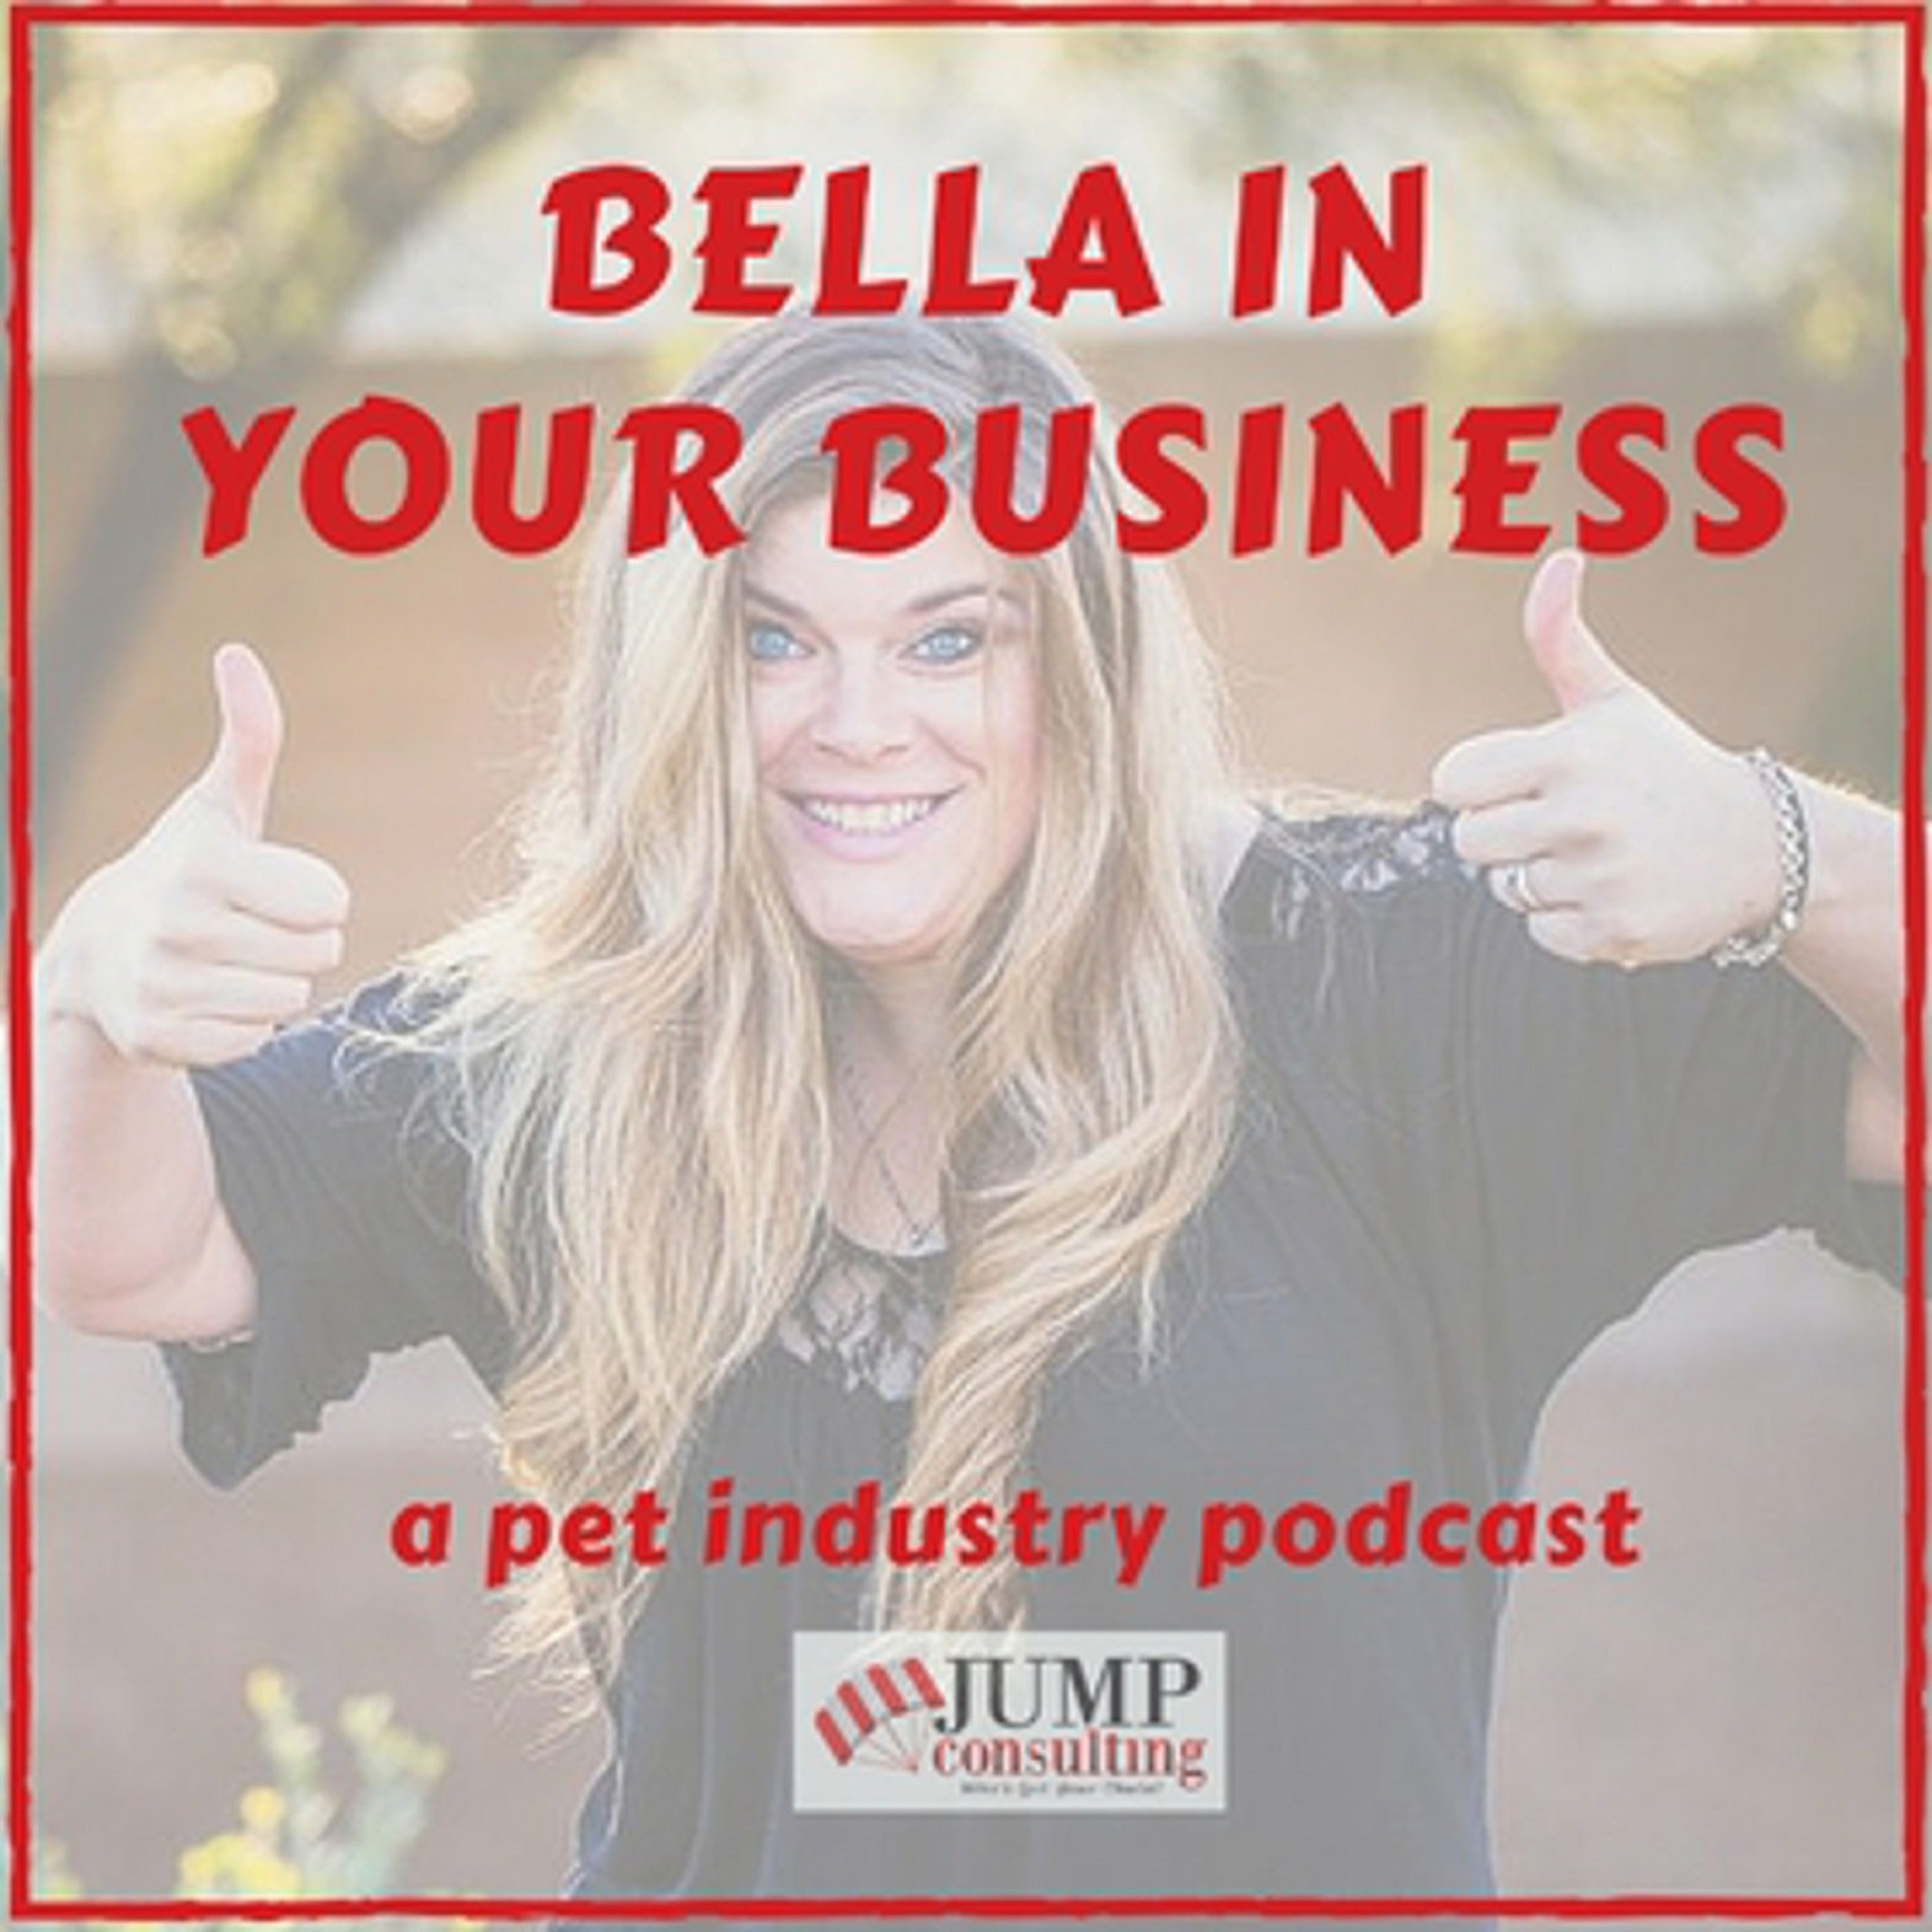 Bella In Your Business!